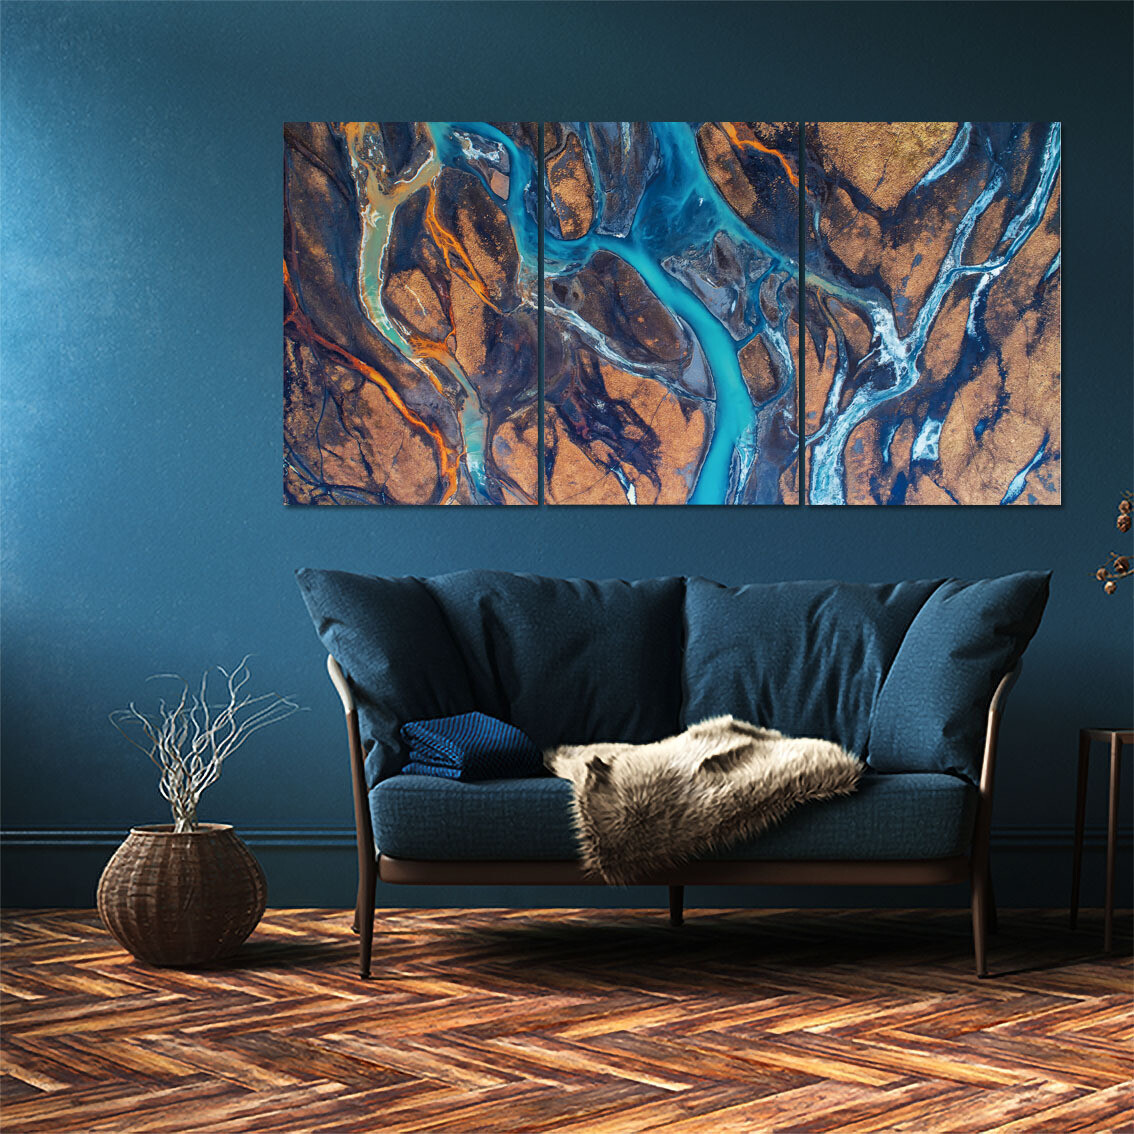 River In Iceland (3 Panels)  - Modern Luxury Wall art Printed on Acrylic Glass - Frameless and Ready to Hang